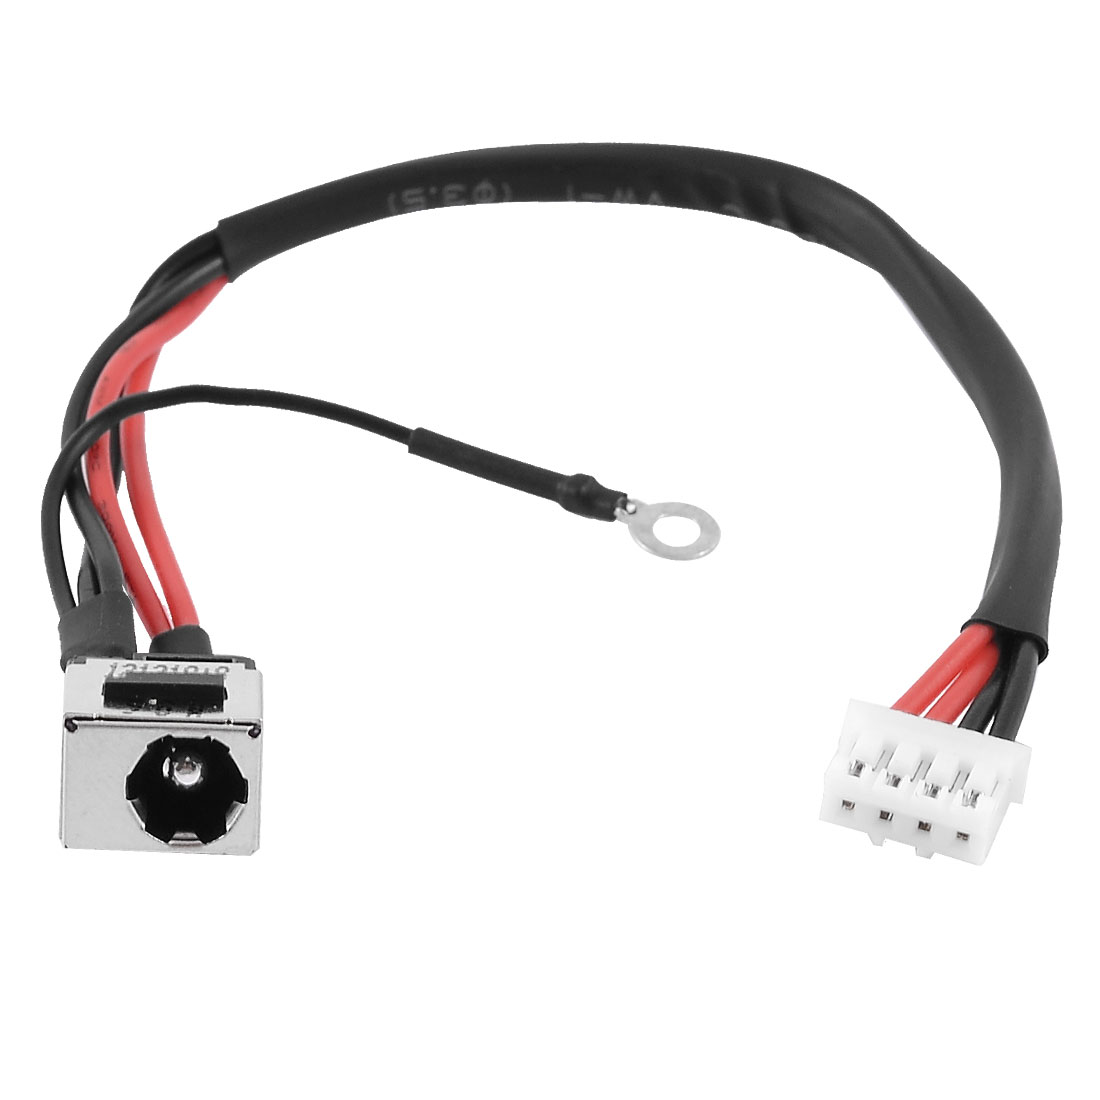 PJ401 2.5mm Center Pin DC Power Jack 4 Pins Cable for Lenovo W920